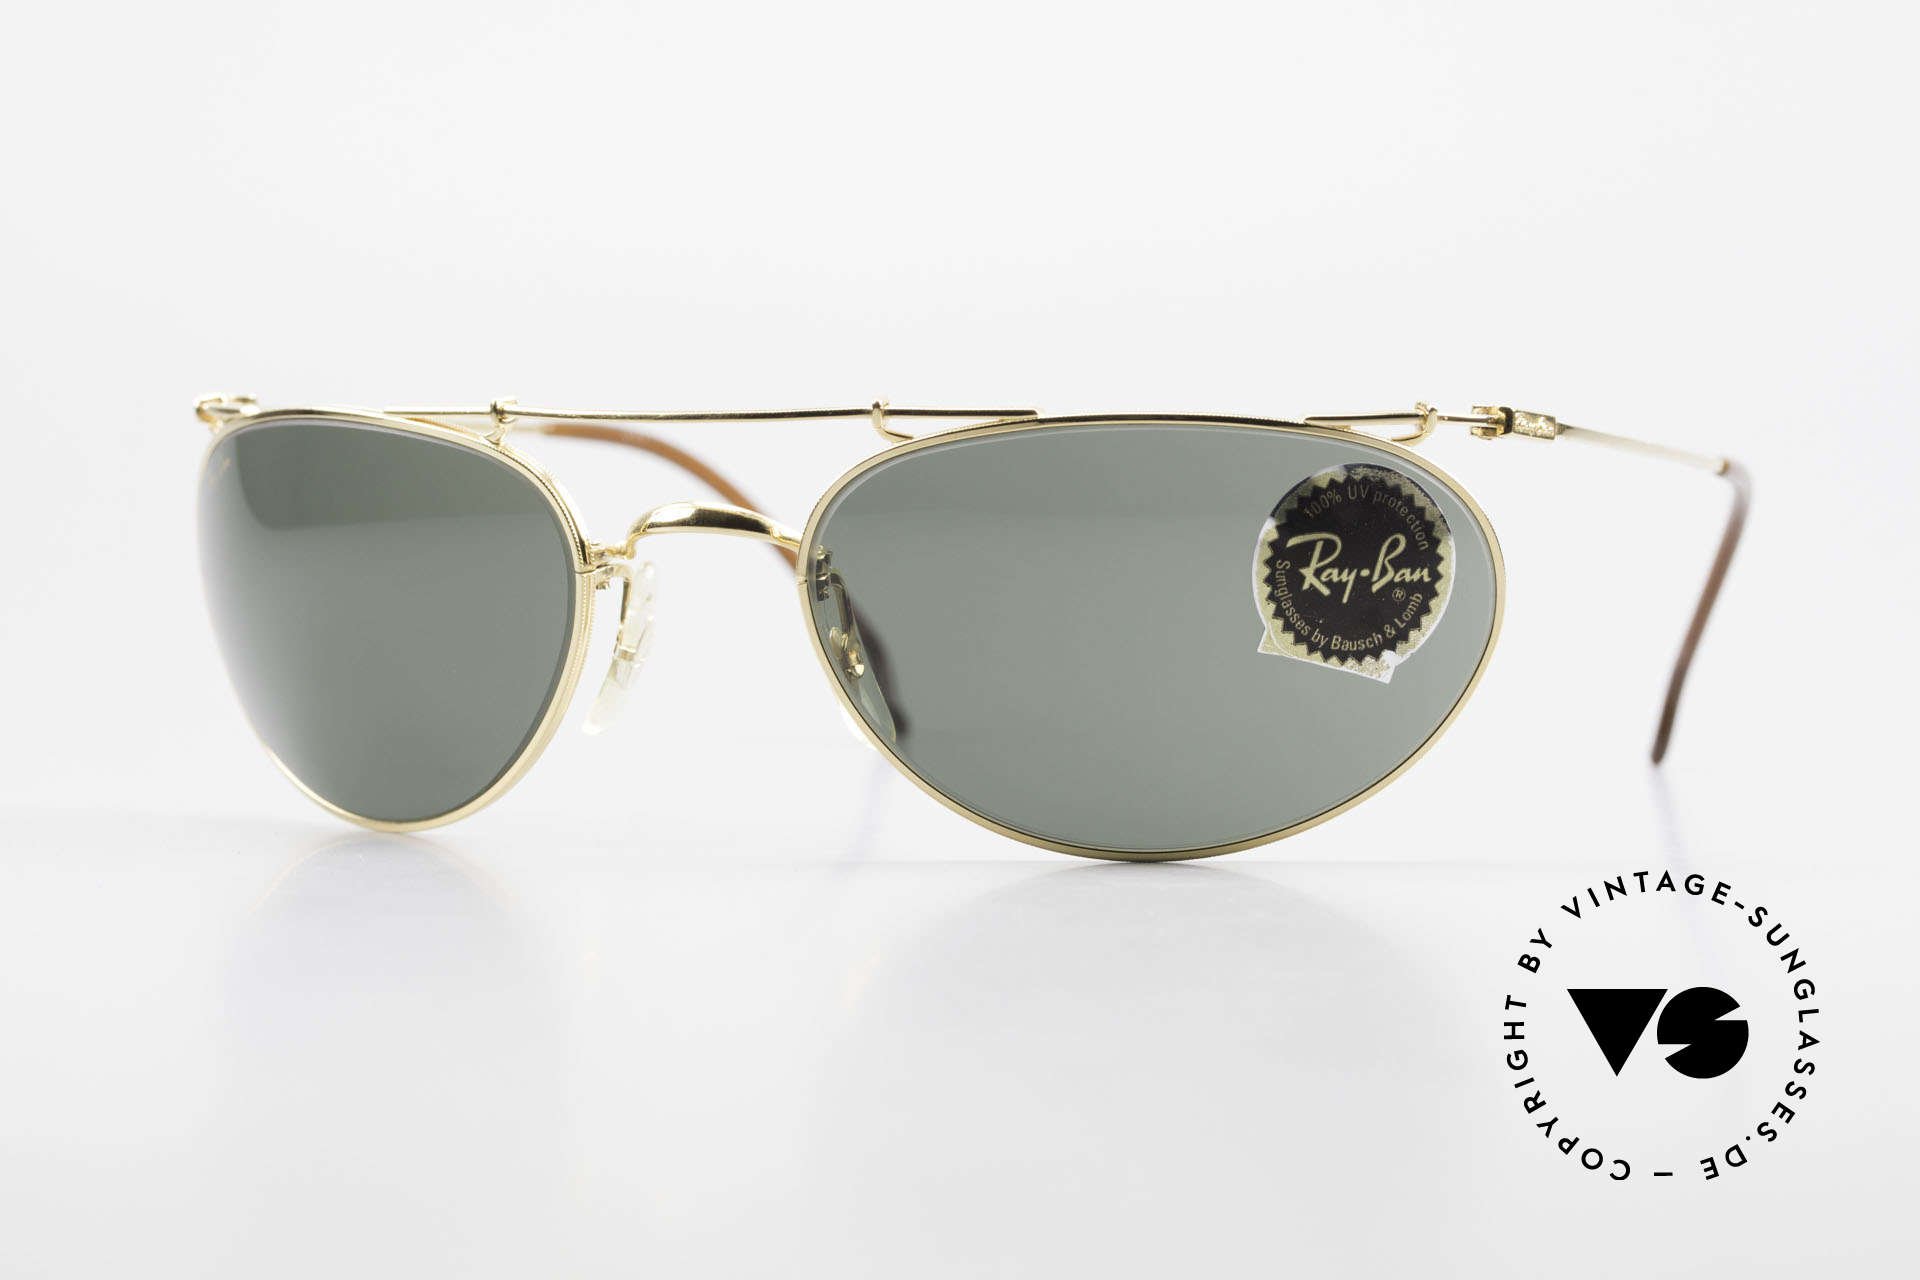 Ray Ban Deco Metals Wrap Old Bausch Lomb Ray-Ban USA, model from the Deco Metals Collection by RAY-BAN, Made for Men and Women